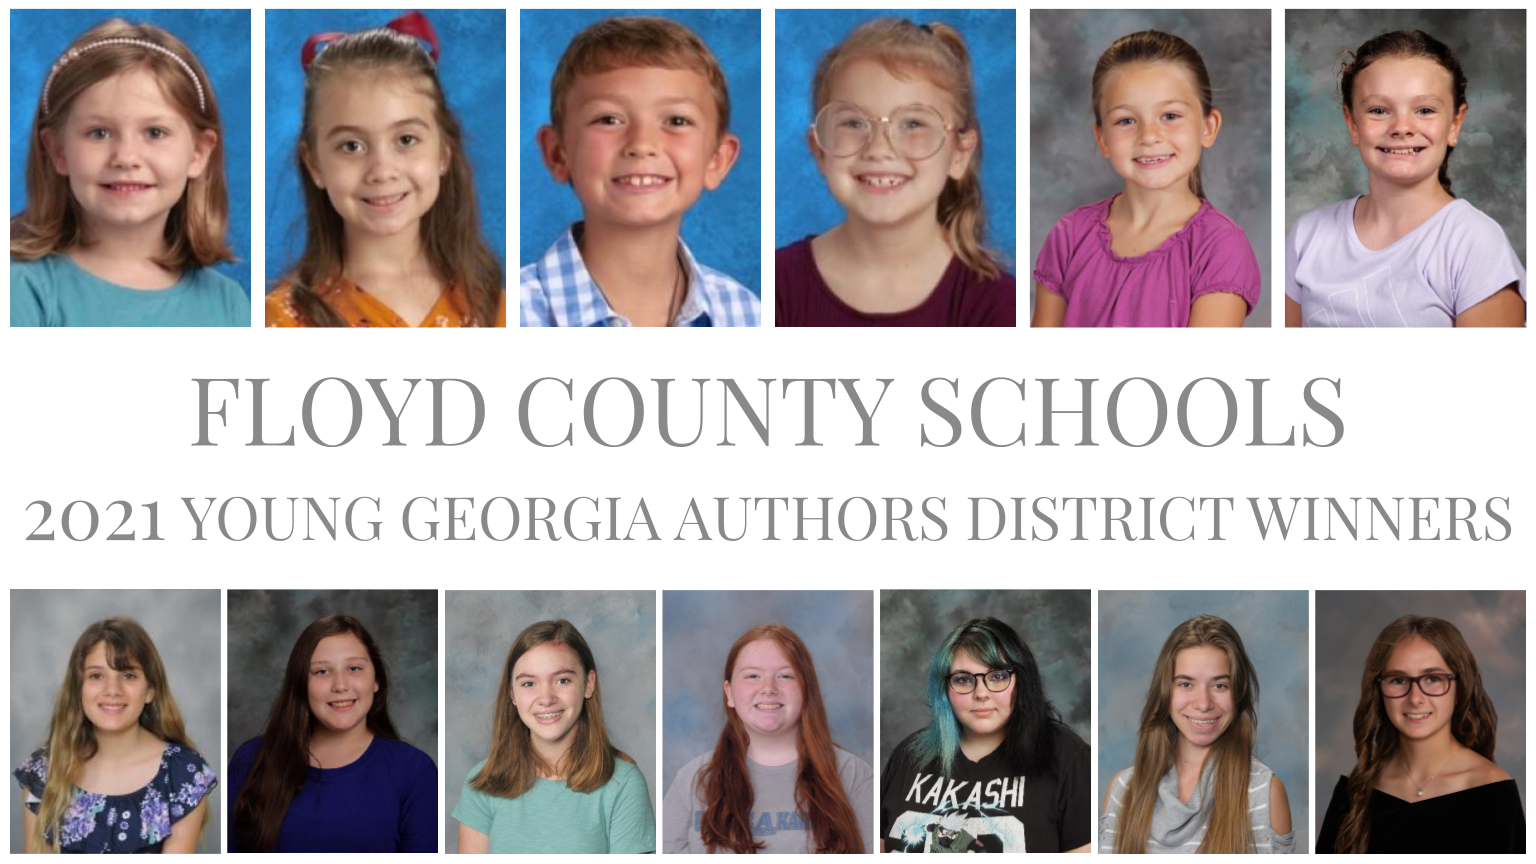 FCS Announces District Winners in Young Georgia Authors Writing Competition